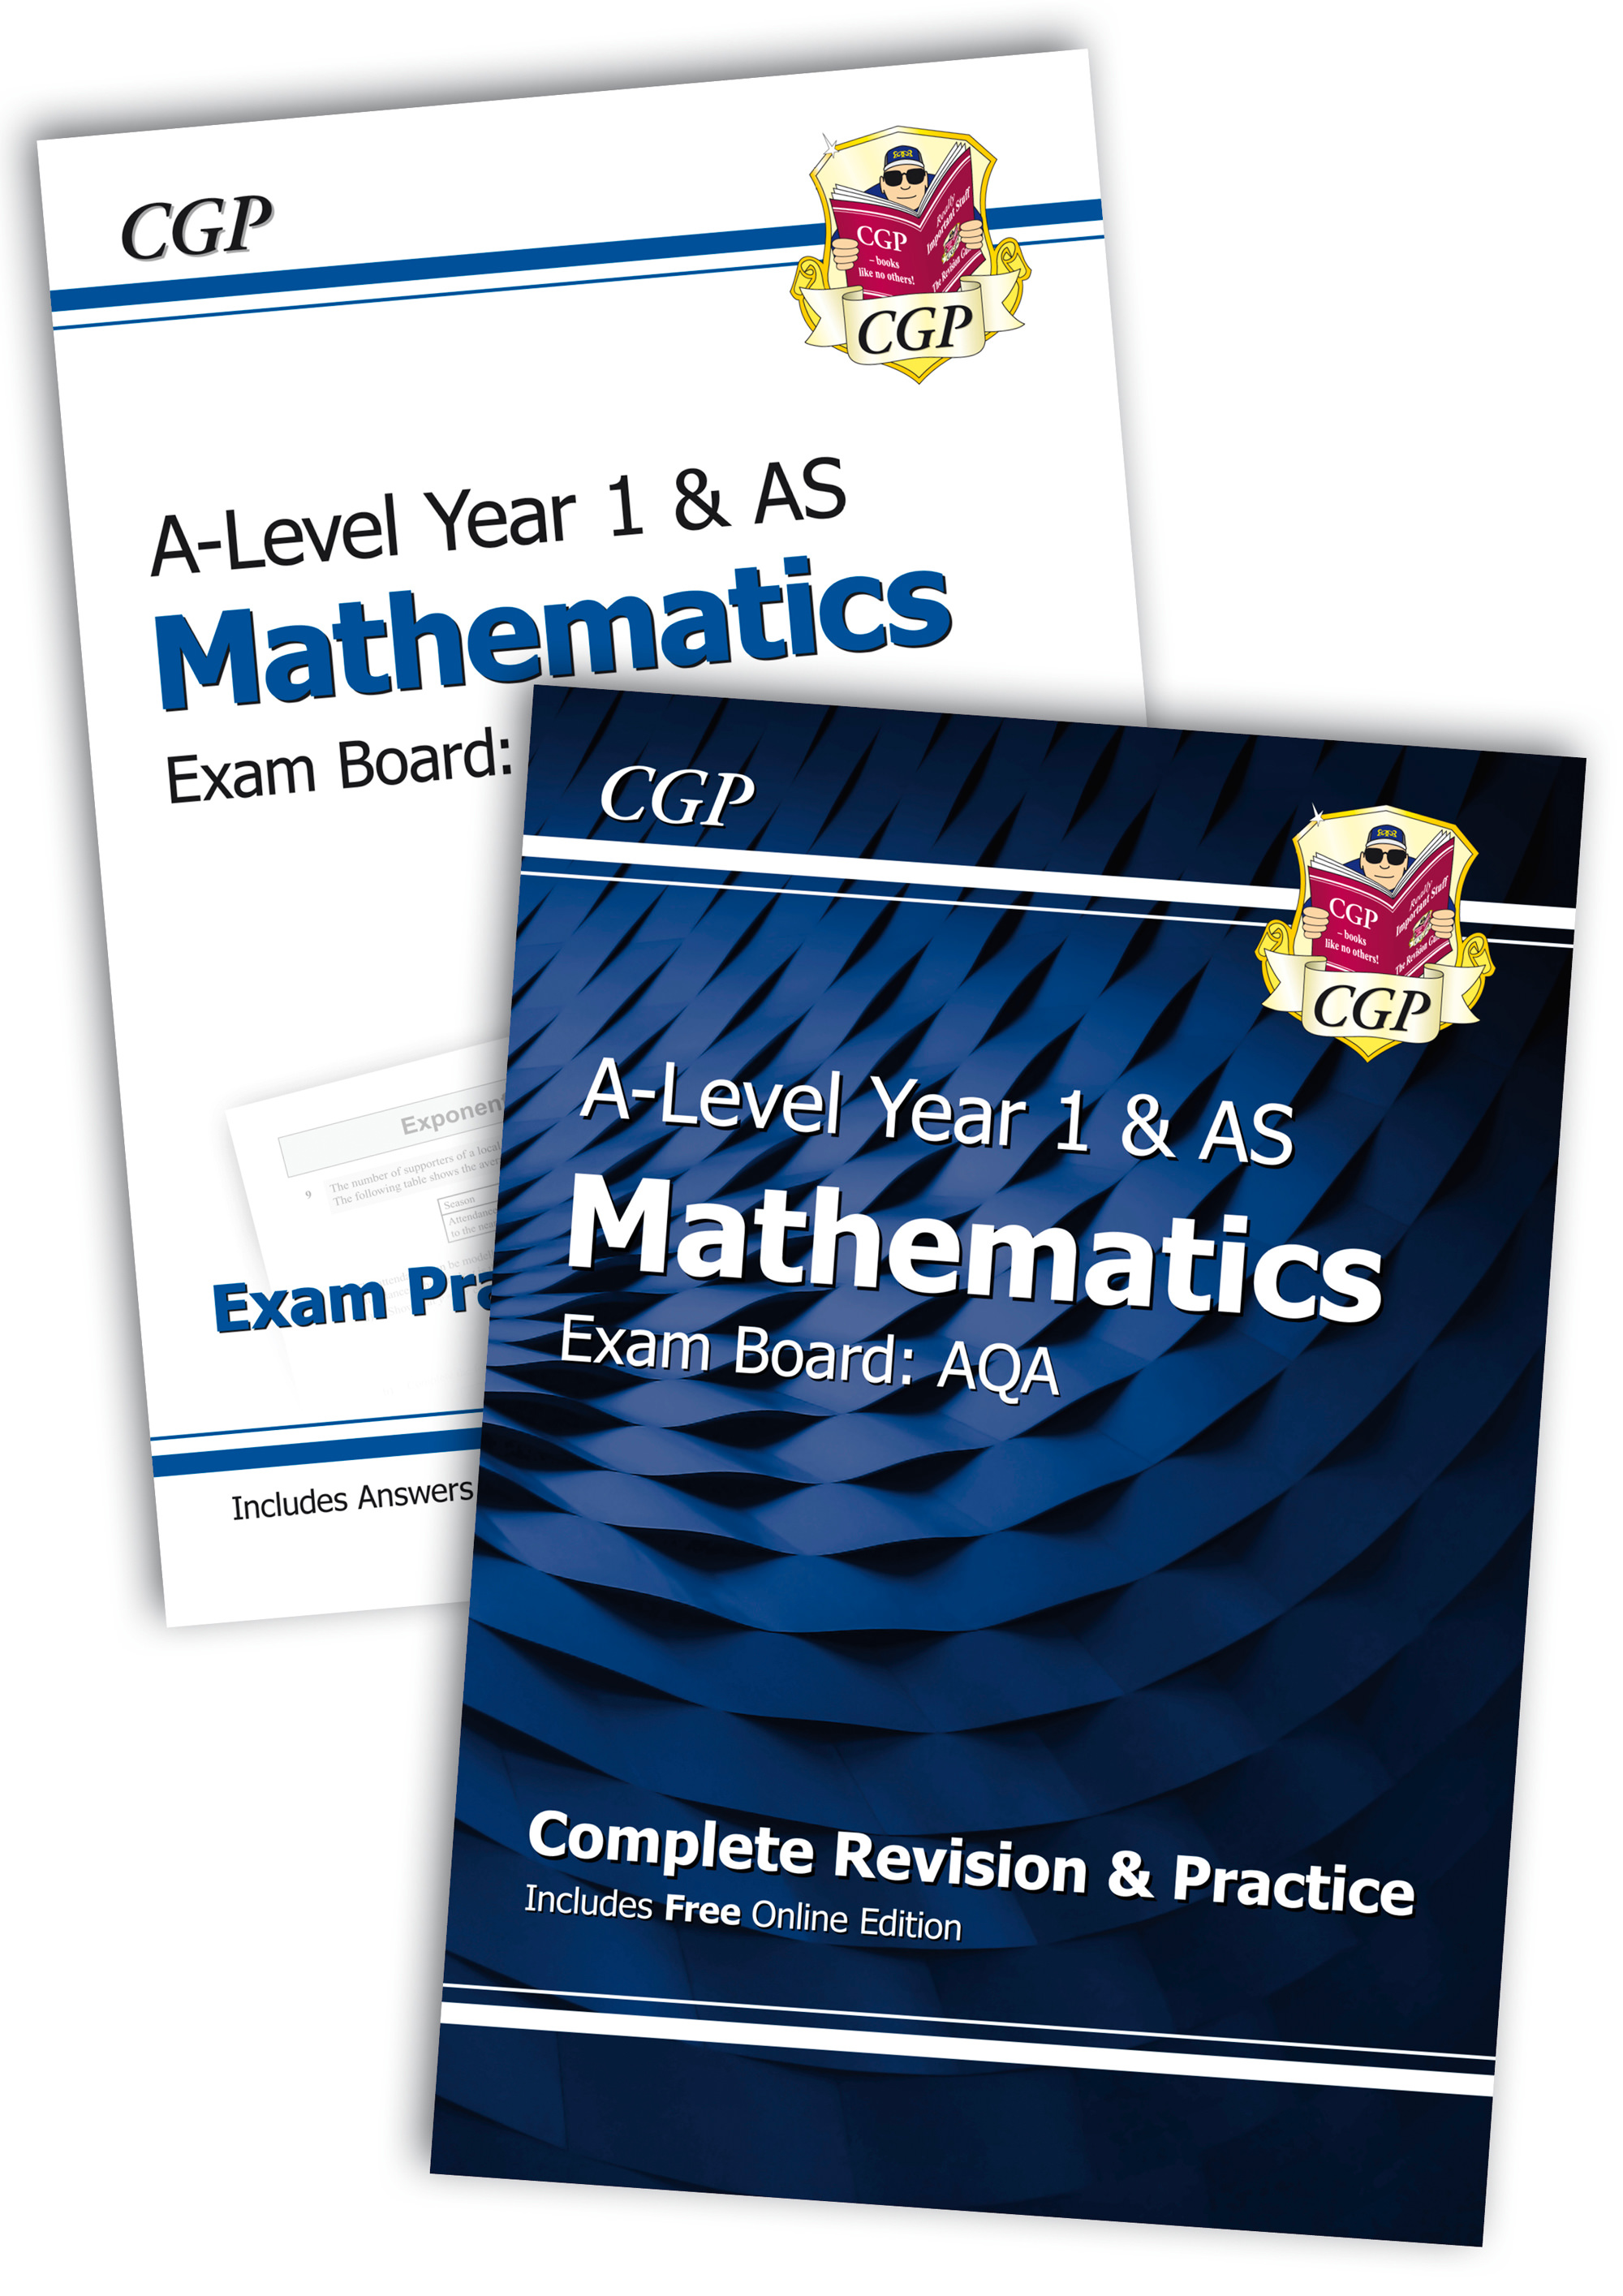 MAHB51 - New Complete Revision and Exam Practice A-Level Maths Bundle: AQA Year 1 & AS